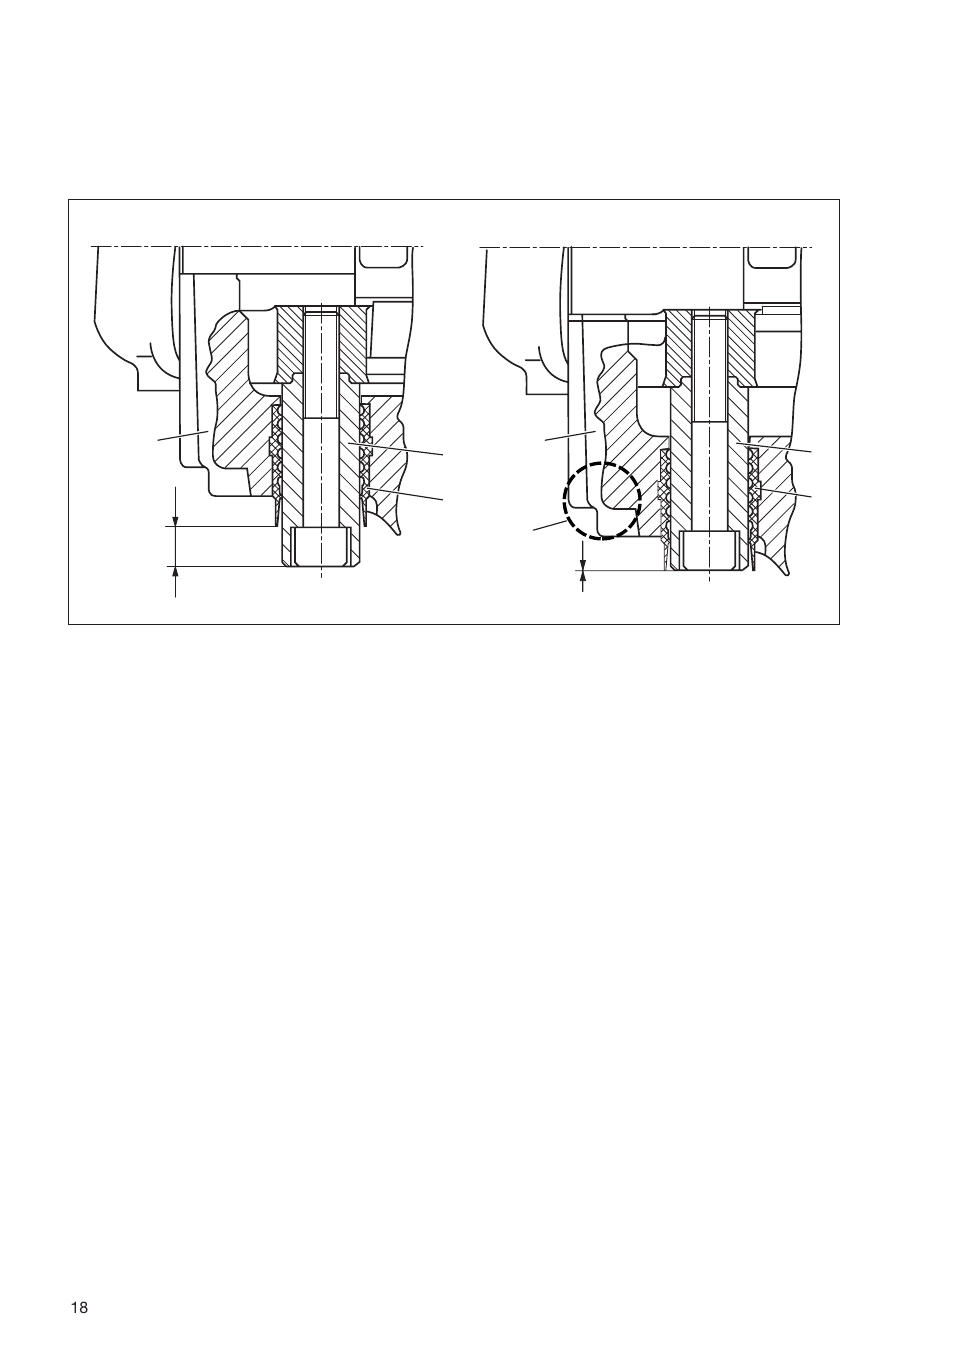 hight resolution of bendix commercial vehicle systems sb 7 air disc brake user manual page 18 36 also for sb 6 air disc brake